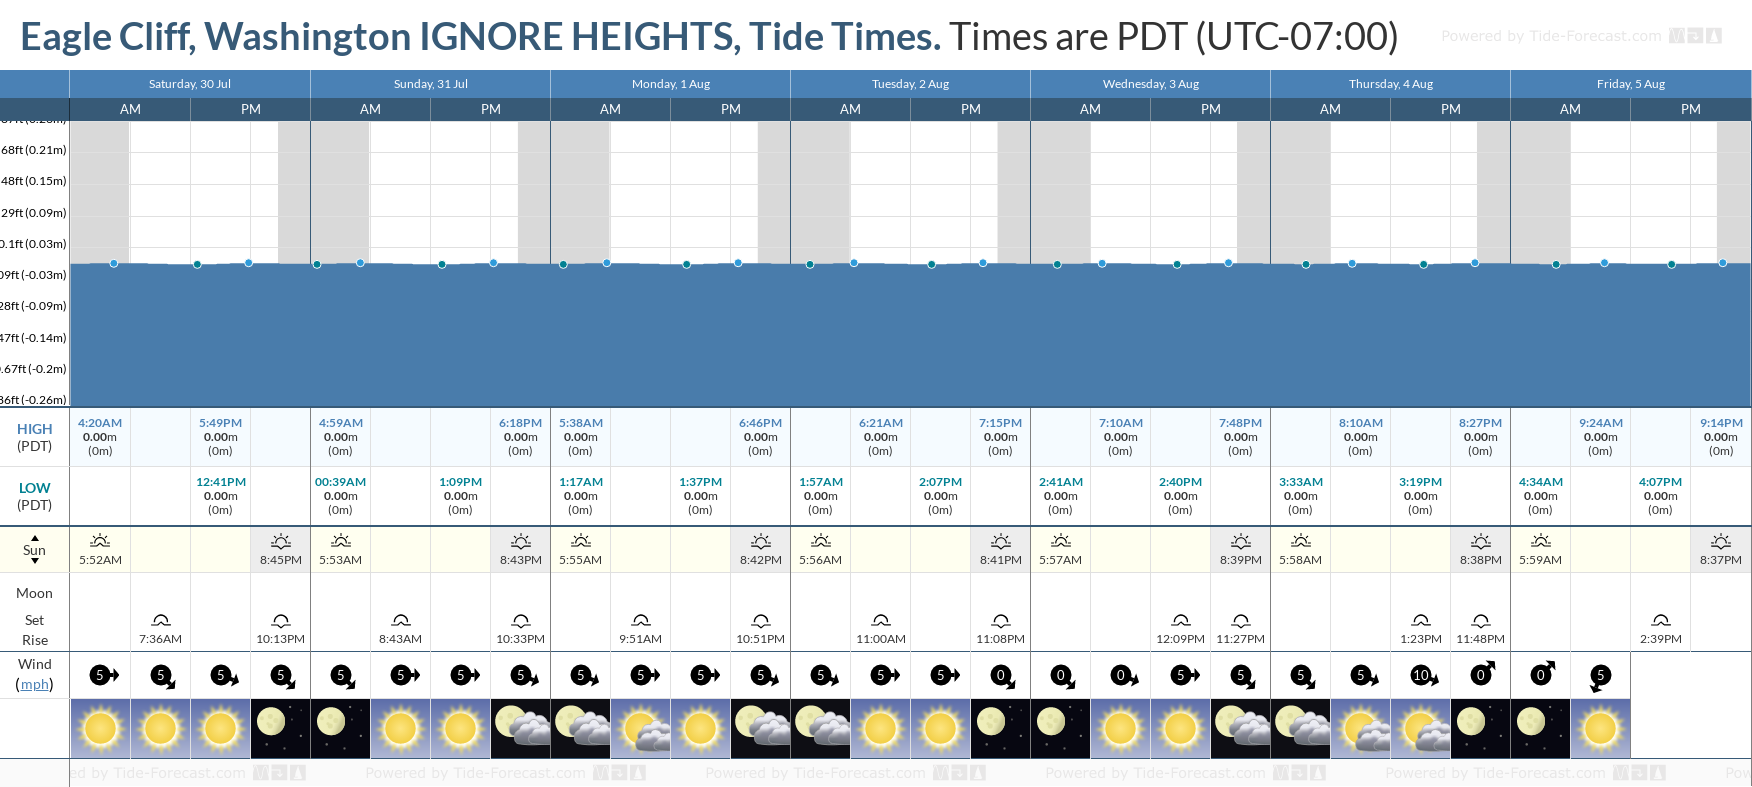 Eagle Cliff, Washington IGNORE HEIGHTS Tide Chart including high and low tide tide times for the next 7 days